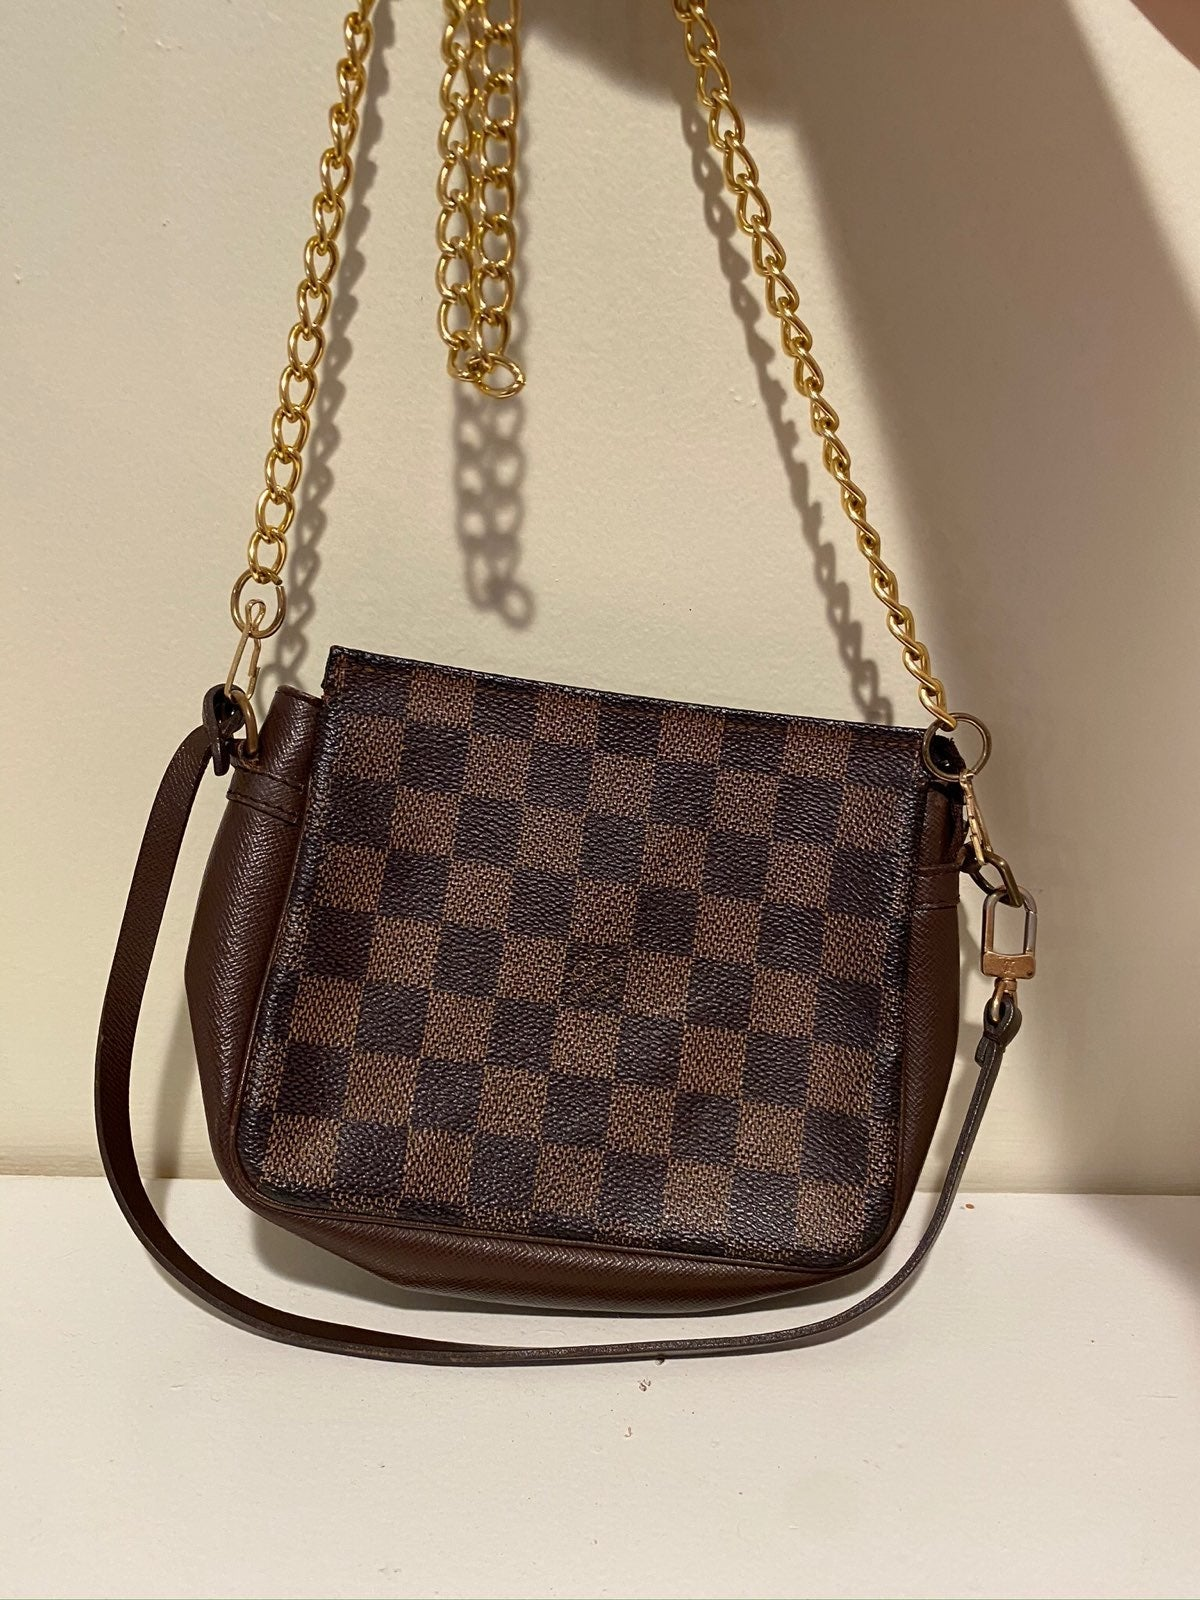 Authentic Louis Vuitton Damier Truth Pou